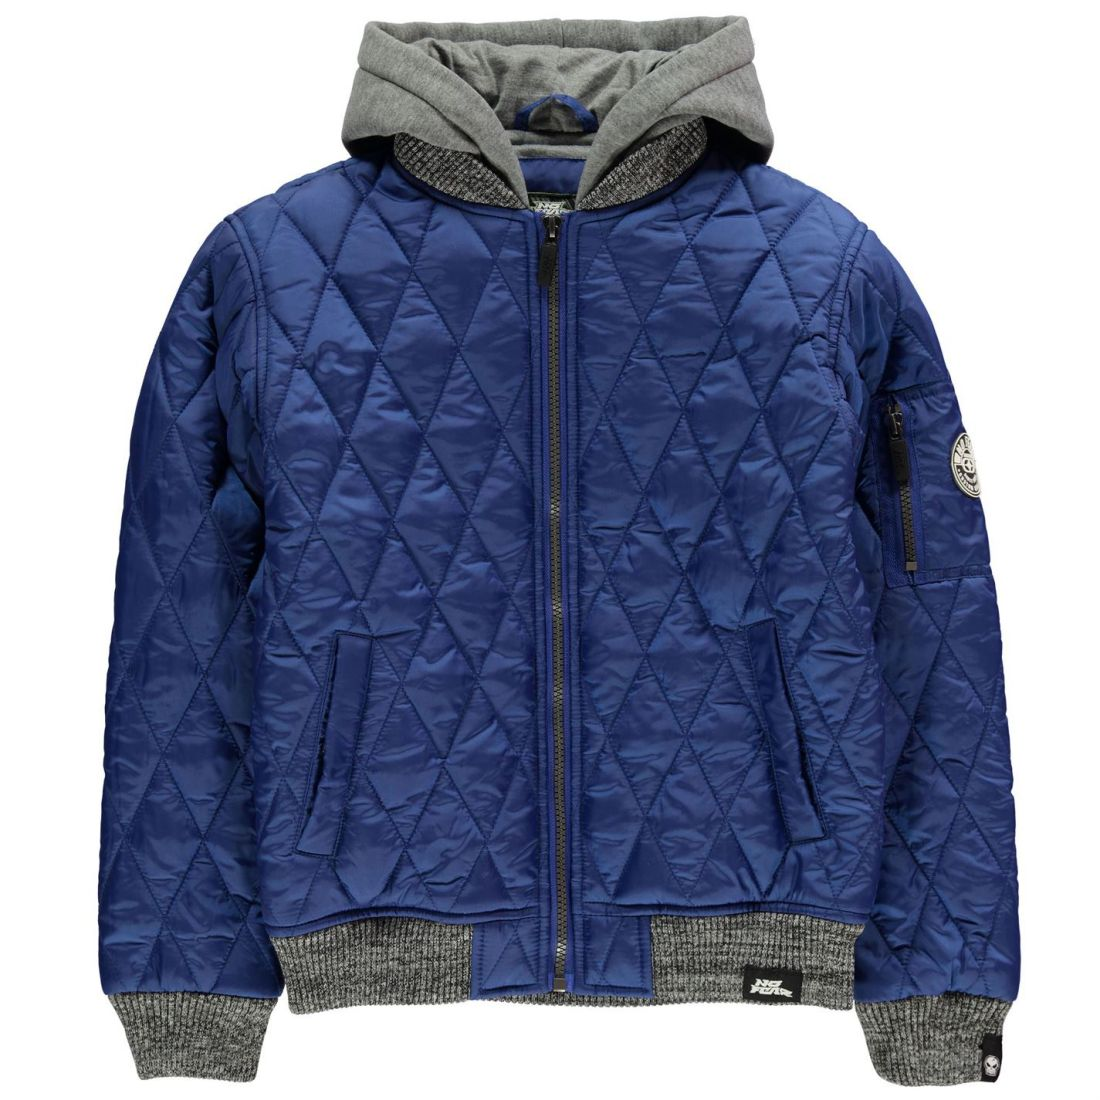 45249faa8653 No Fear Quilt Bomber Jacket Youngster Boys Quilted Coat Top Full ...